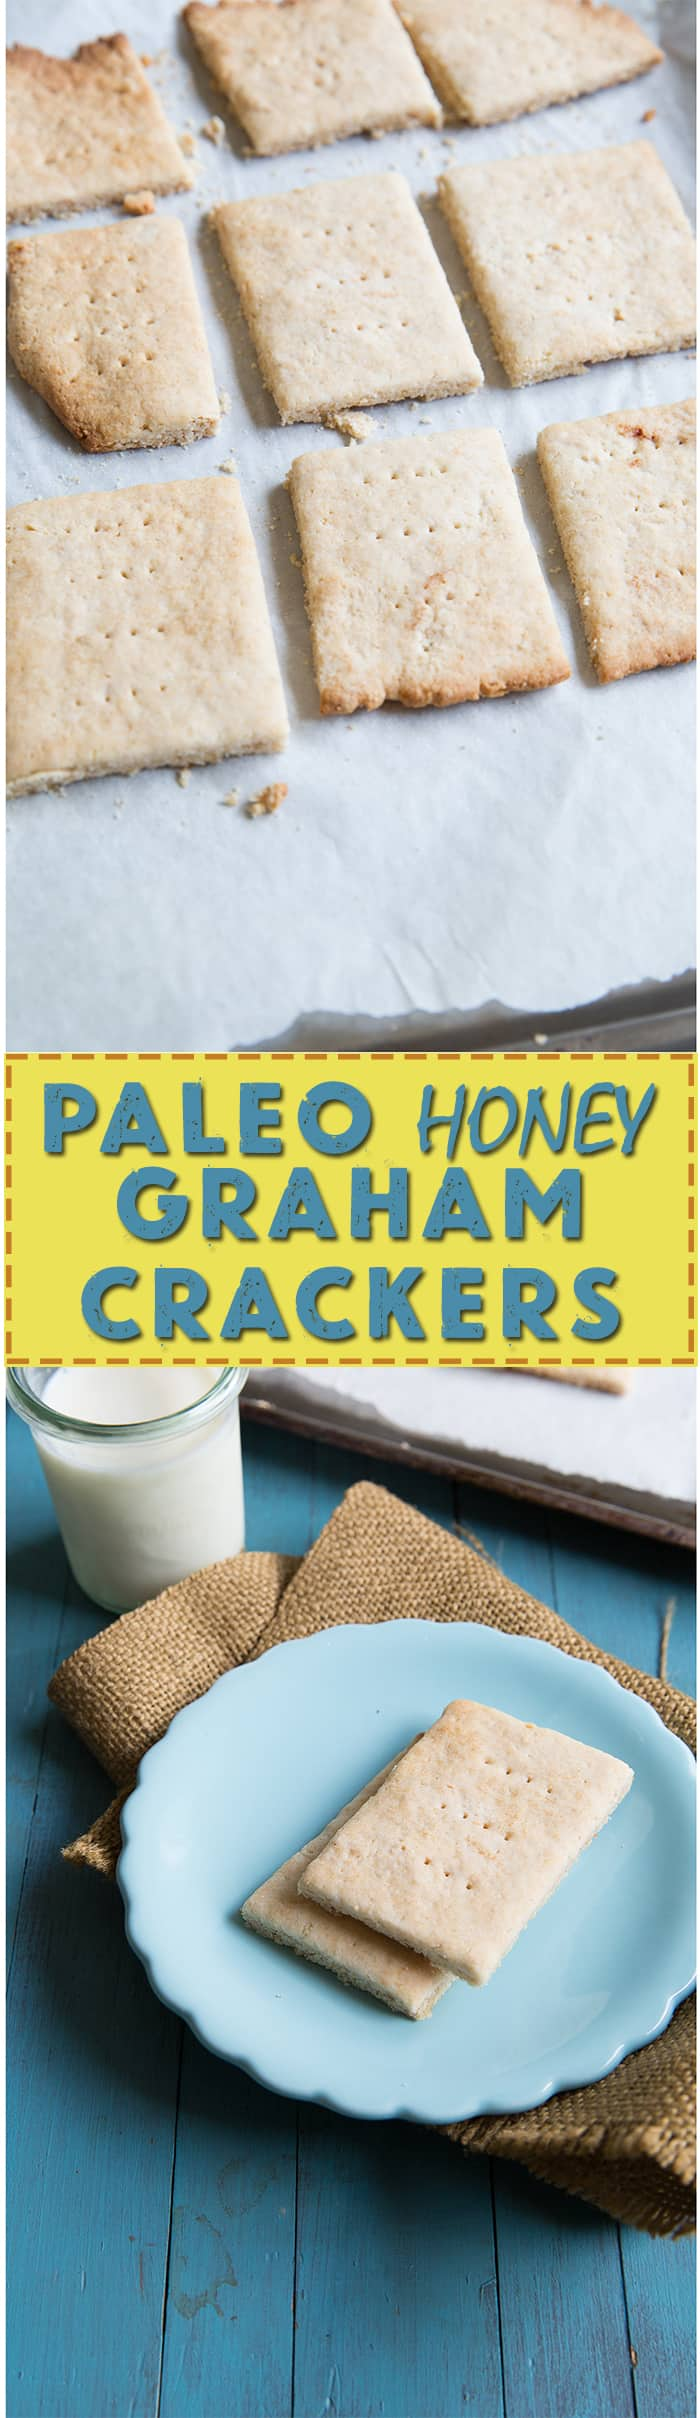 paleo honey graham crackers